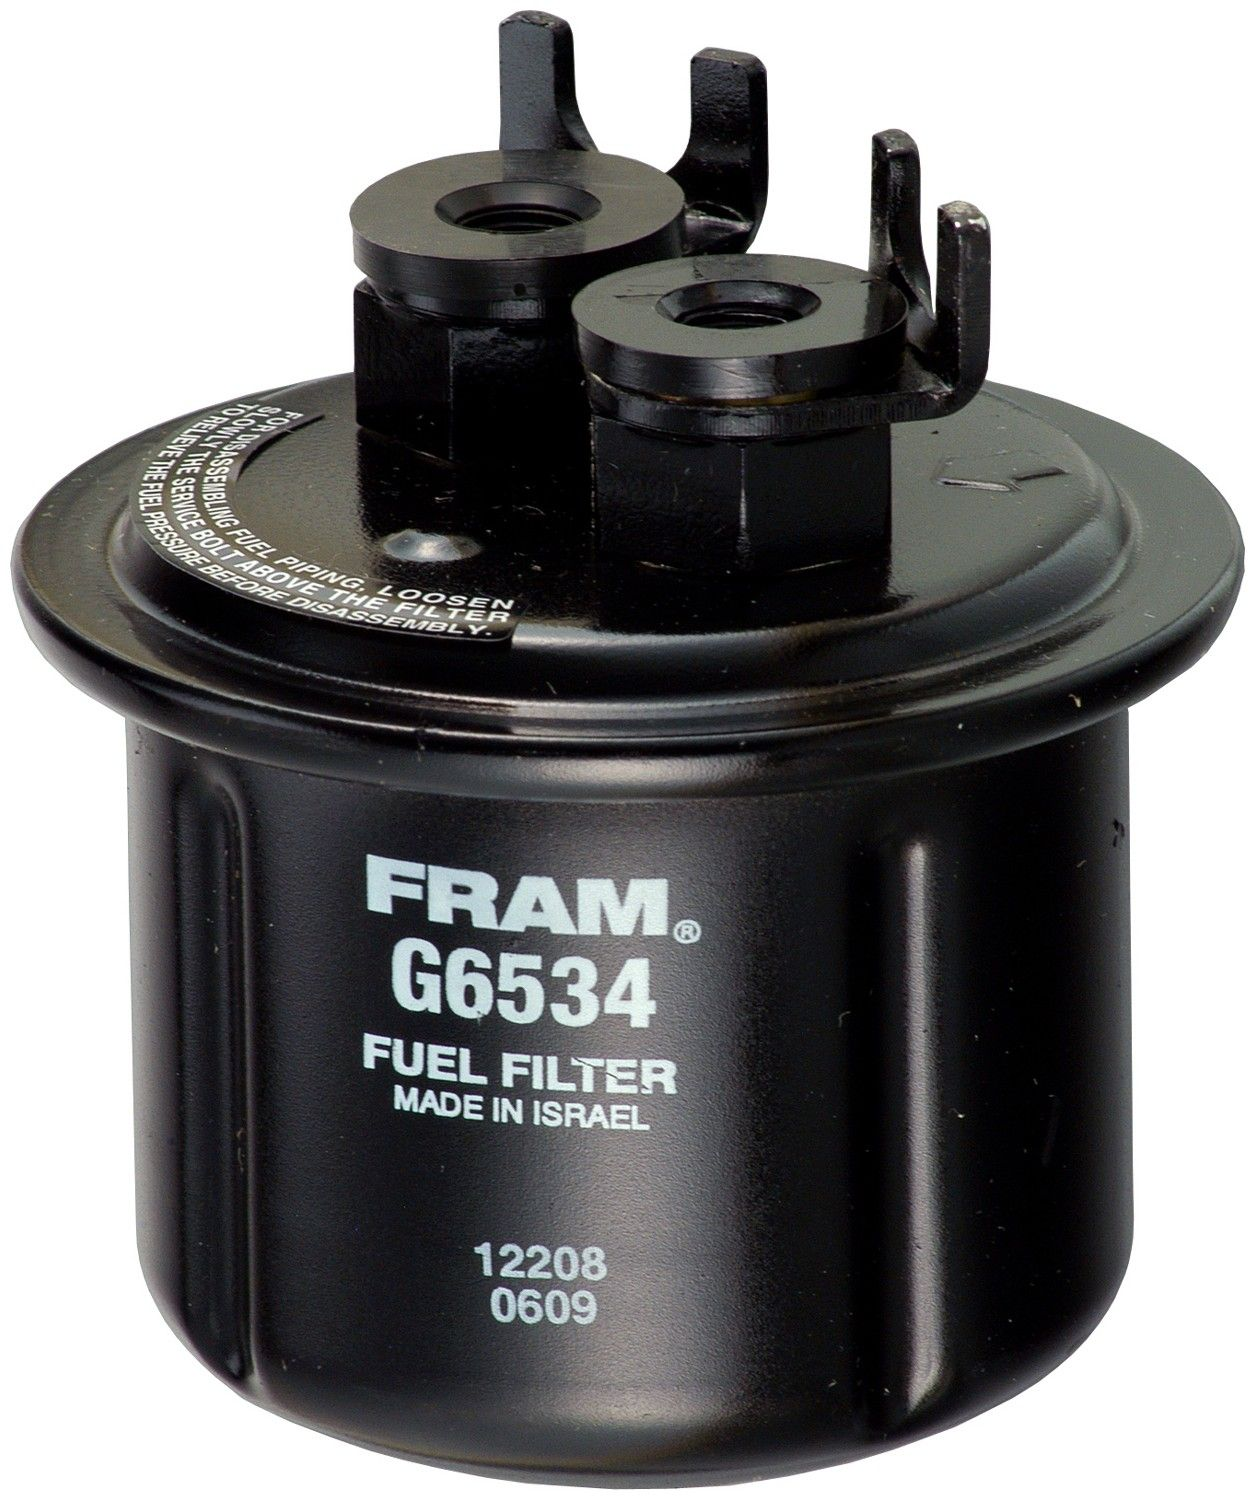 1988 Honda Civic Fuel Filter 4 Cyl 1.5L (Fram G6534) In-Line Fuel Filter  Unit box product .